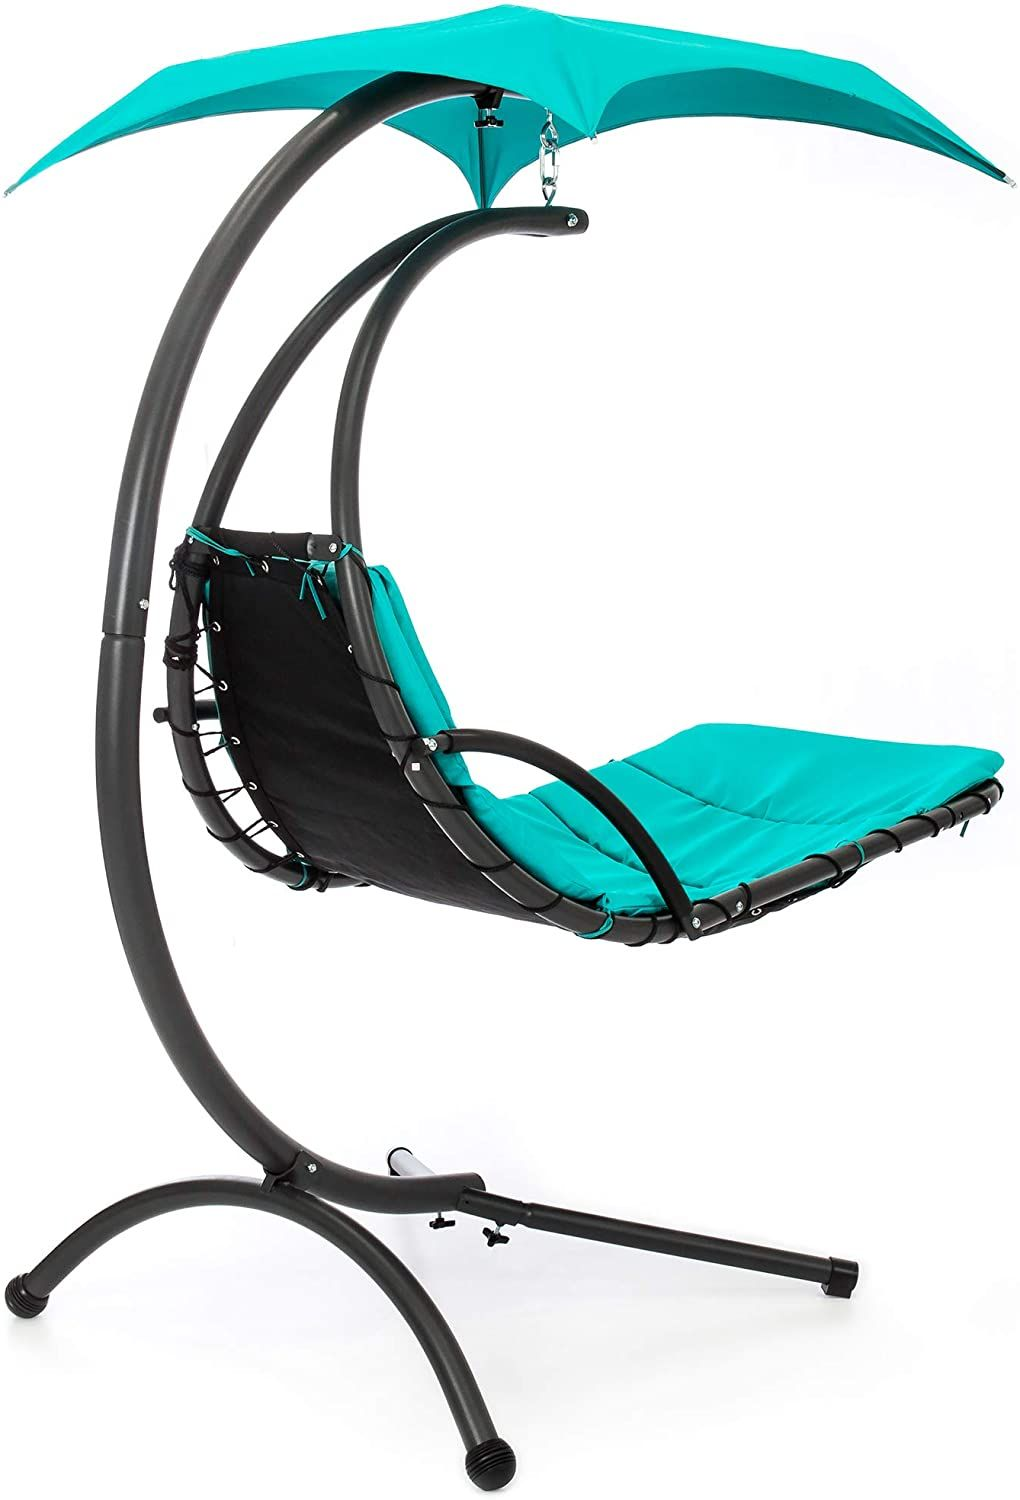 Stand Curved Chaise Lounge Chair Swing For Backyard With Pillow In 2020 Chaise Lounge Chair Lounge Chair Outdoor Swinging Chair